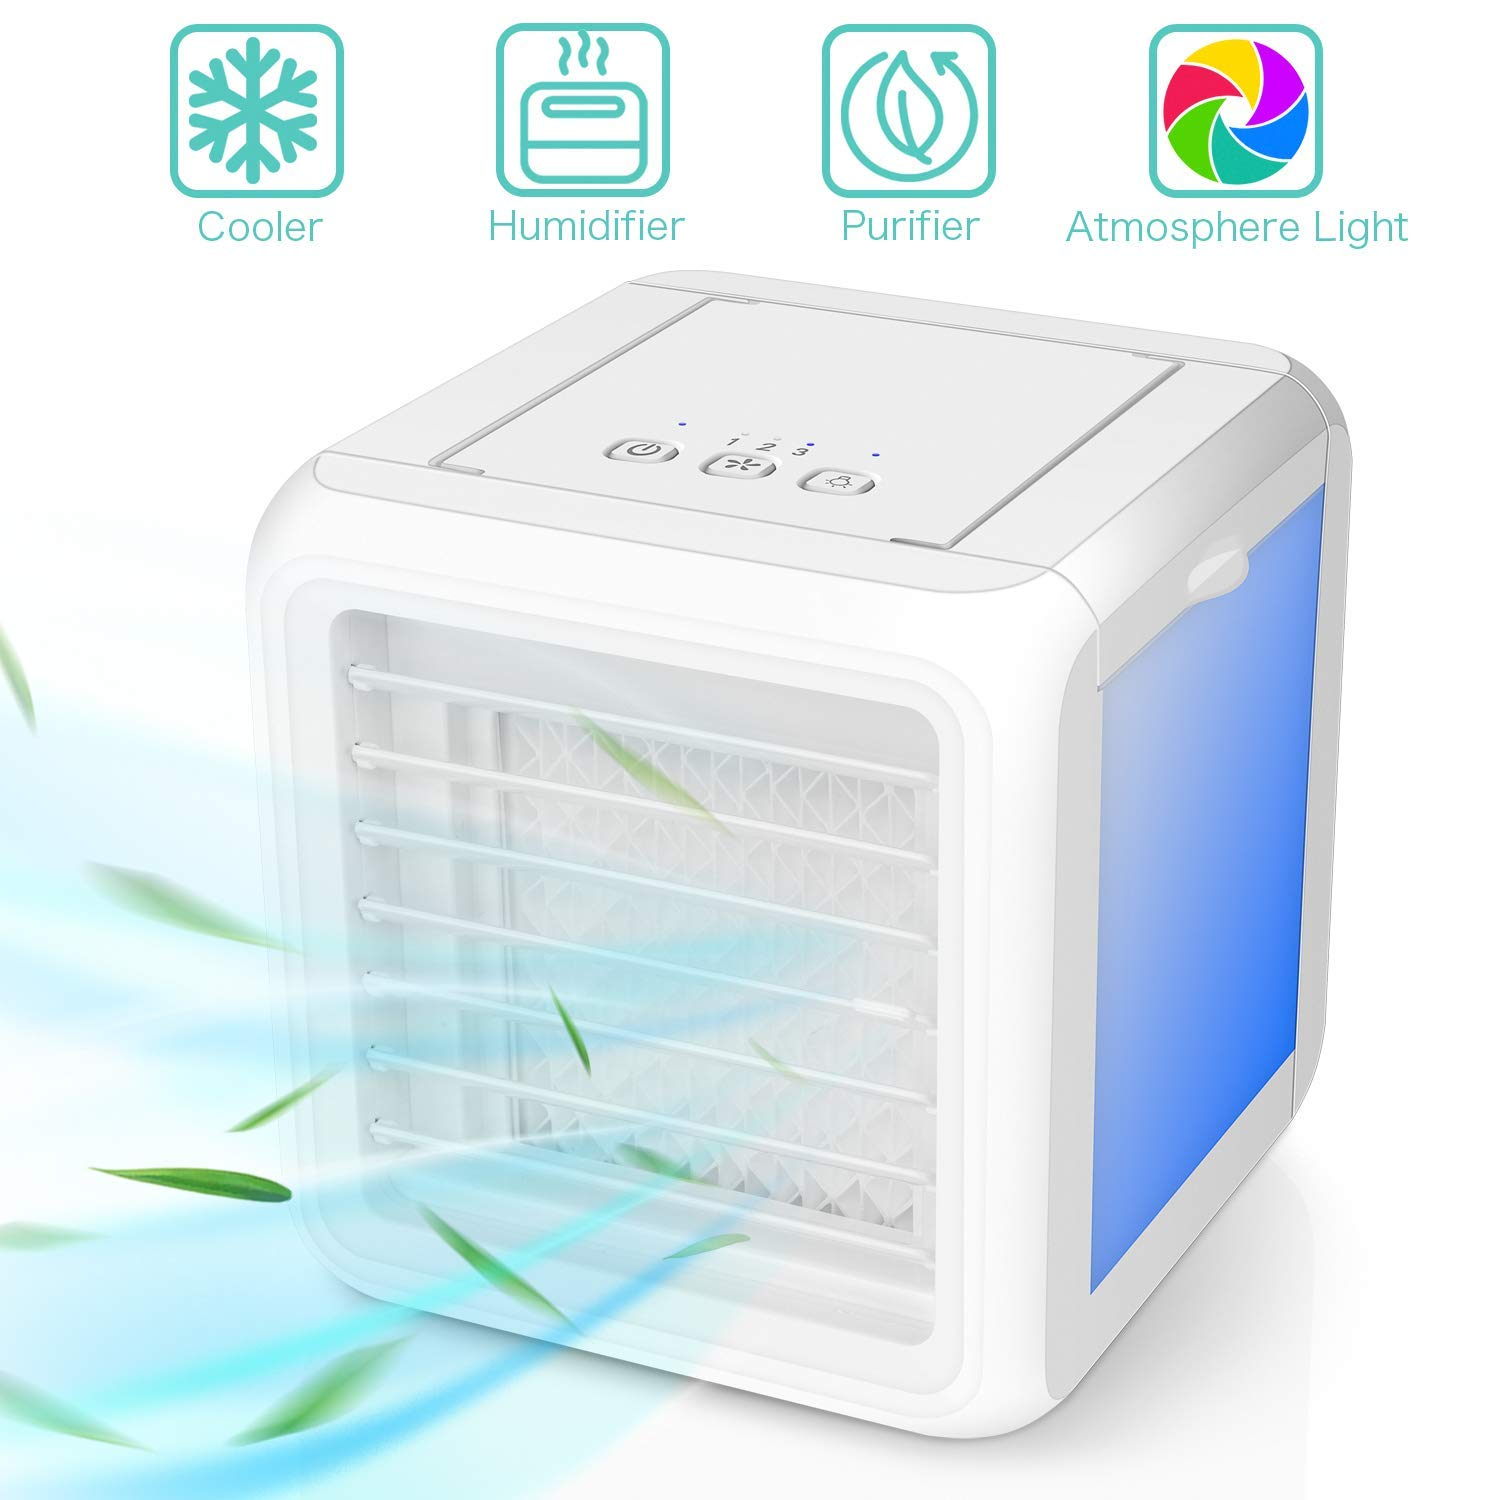 Leakproof New Filter y- White 3 in 1 Mini Personal Space Cooler /& Humidifier /& Purifier with 7 Colors LED Lights Mobile Air Conditioners Nifogo Air Portable Cooler